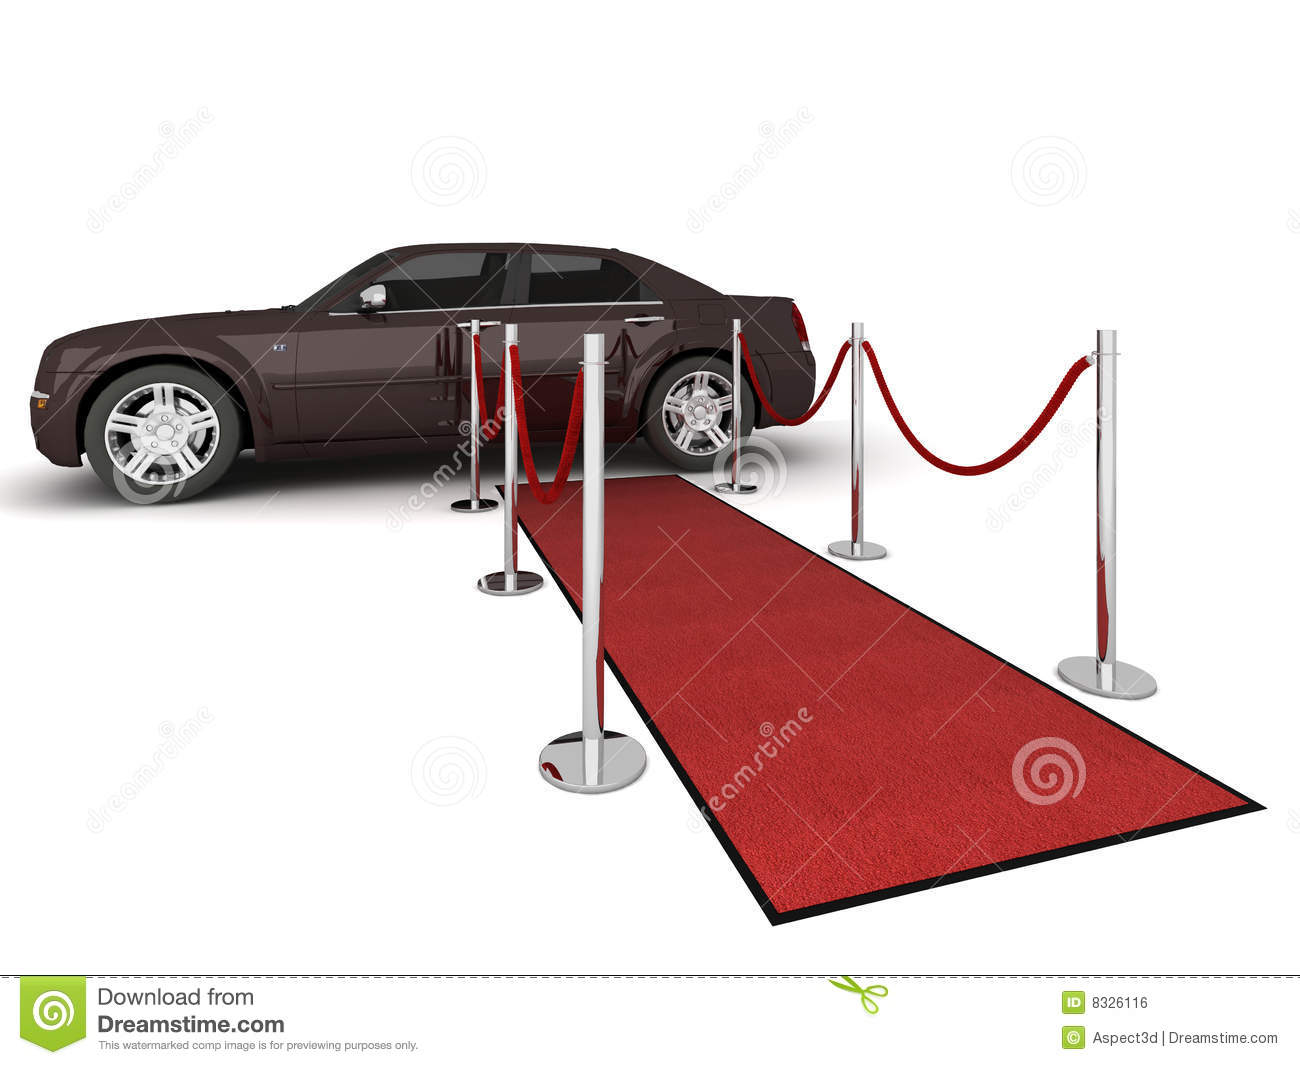 Red carpet clipart limousine picture free stock Red Carpet Limousine Illustration Royalty Free Stock Image ... picture free stock